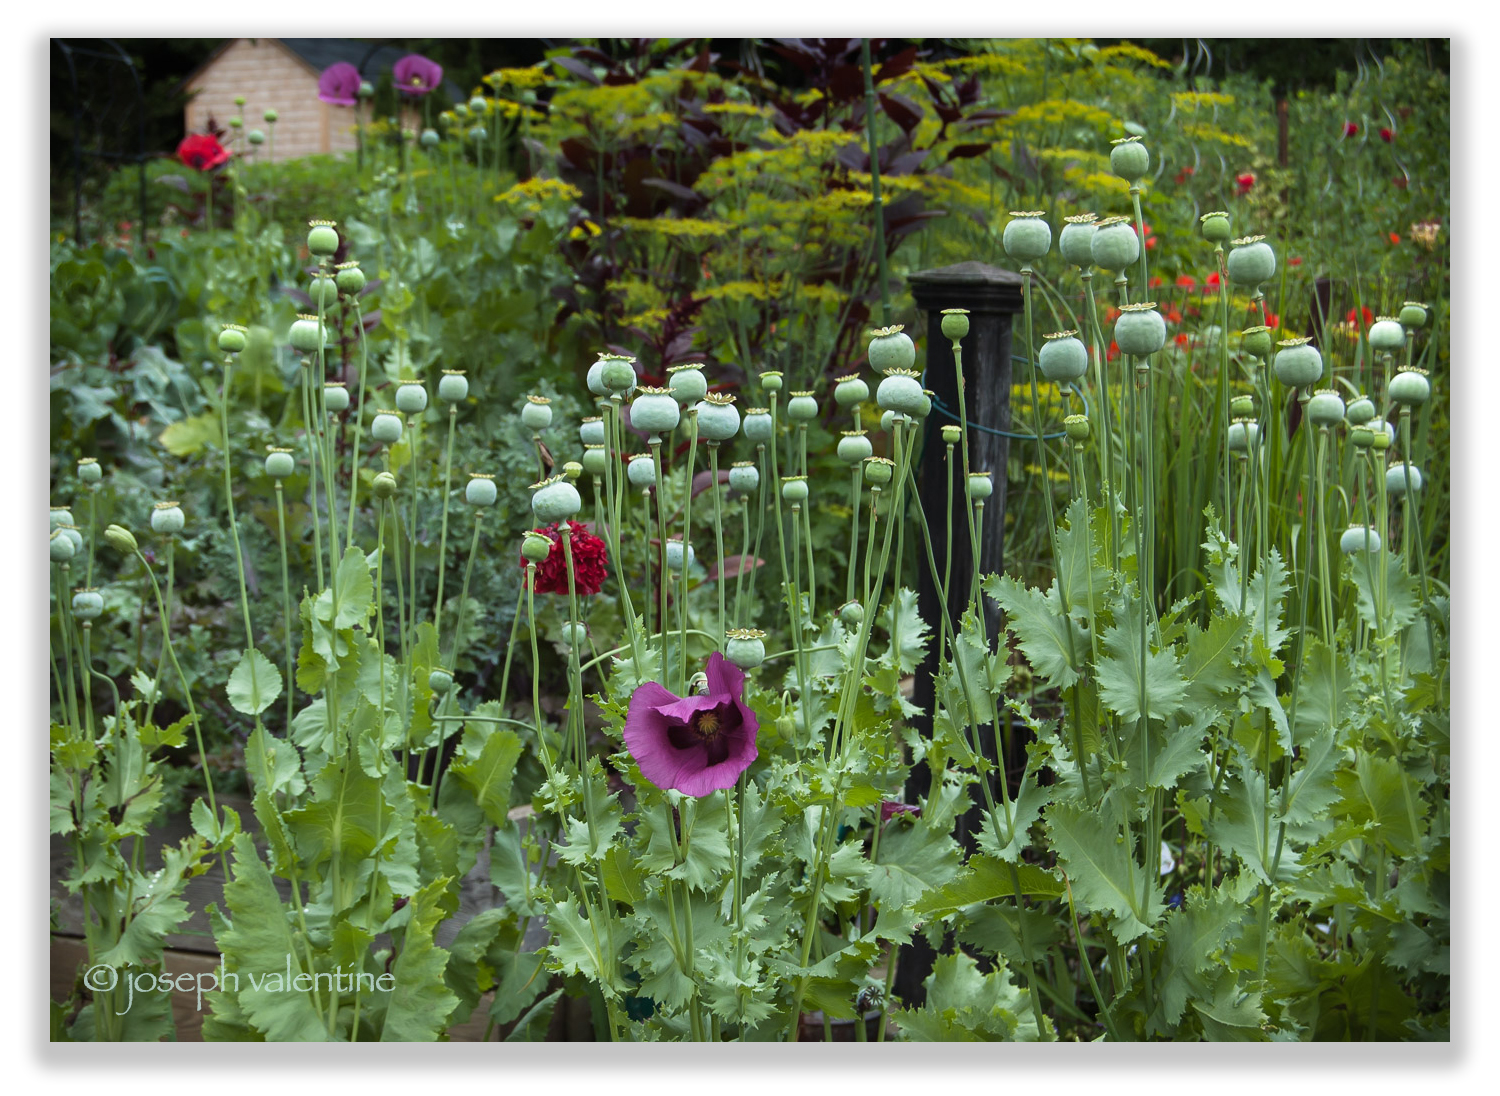 The seed heads of Opium Poppies (Papaver somniferum) add just the right blue-green hue to Bill and Eileen Elliott's floriferous New Hampshire garden.